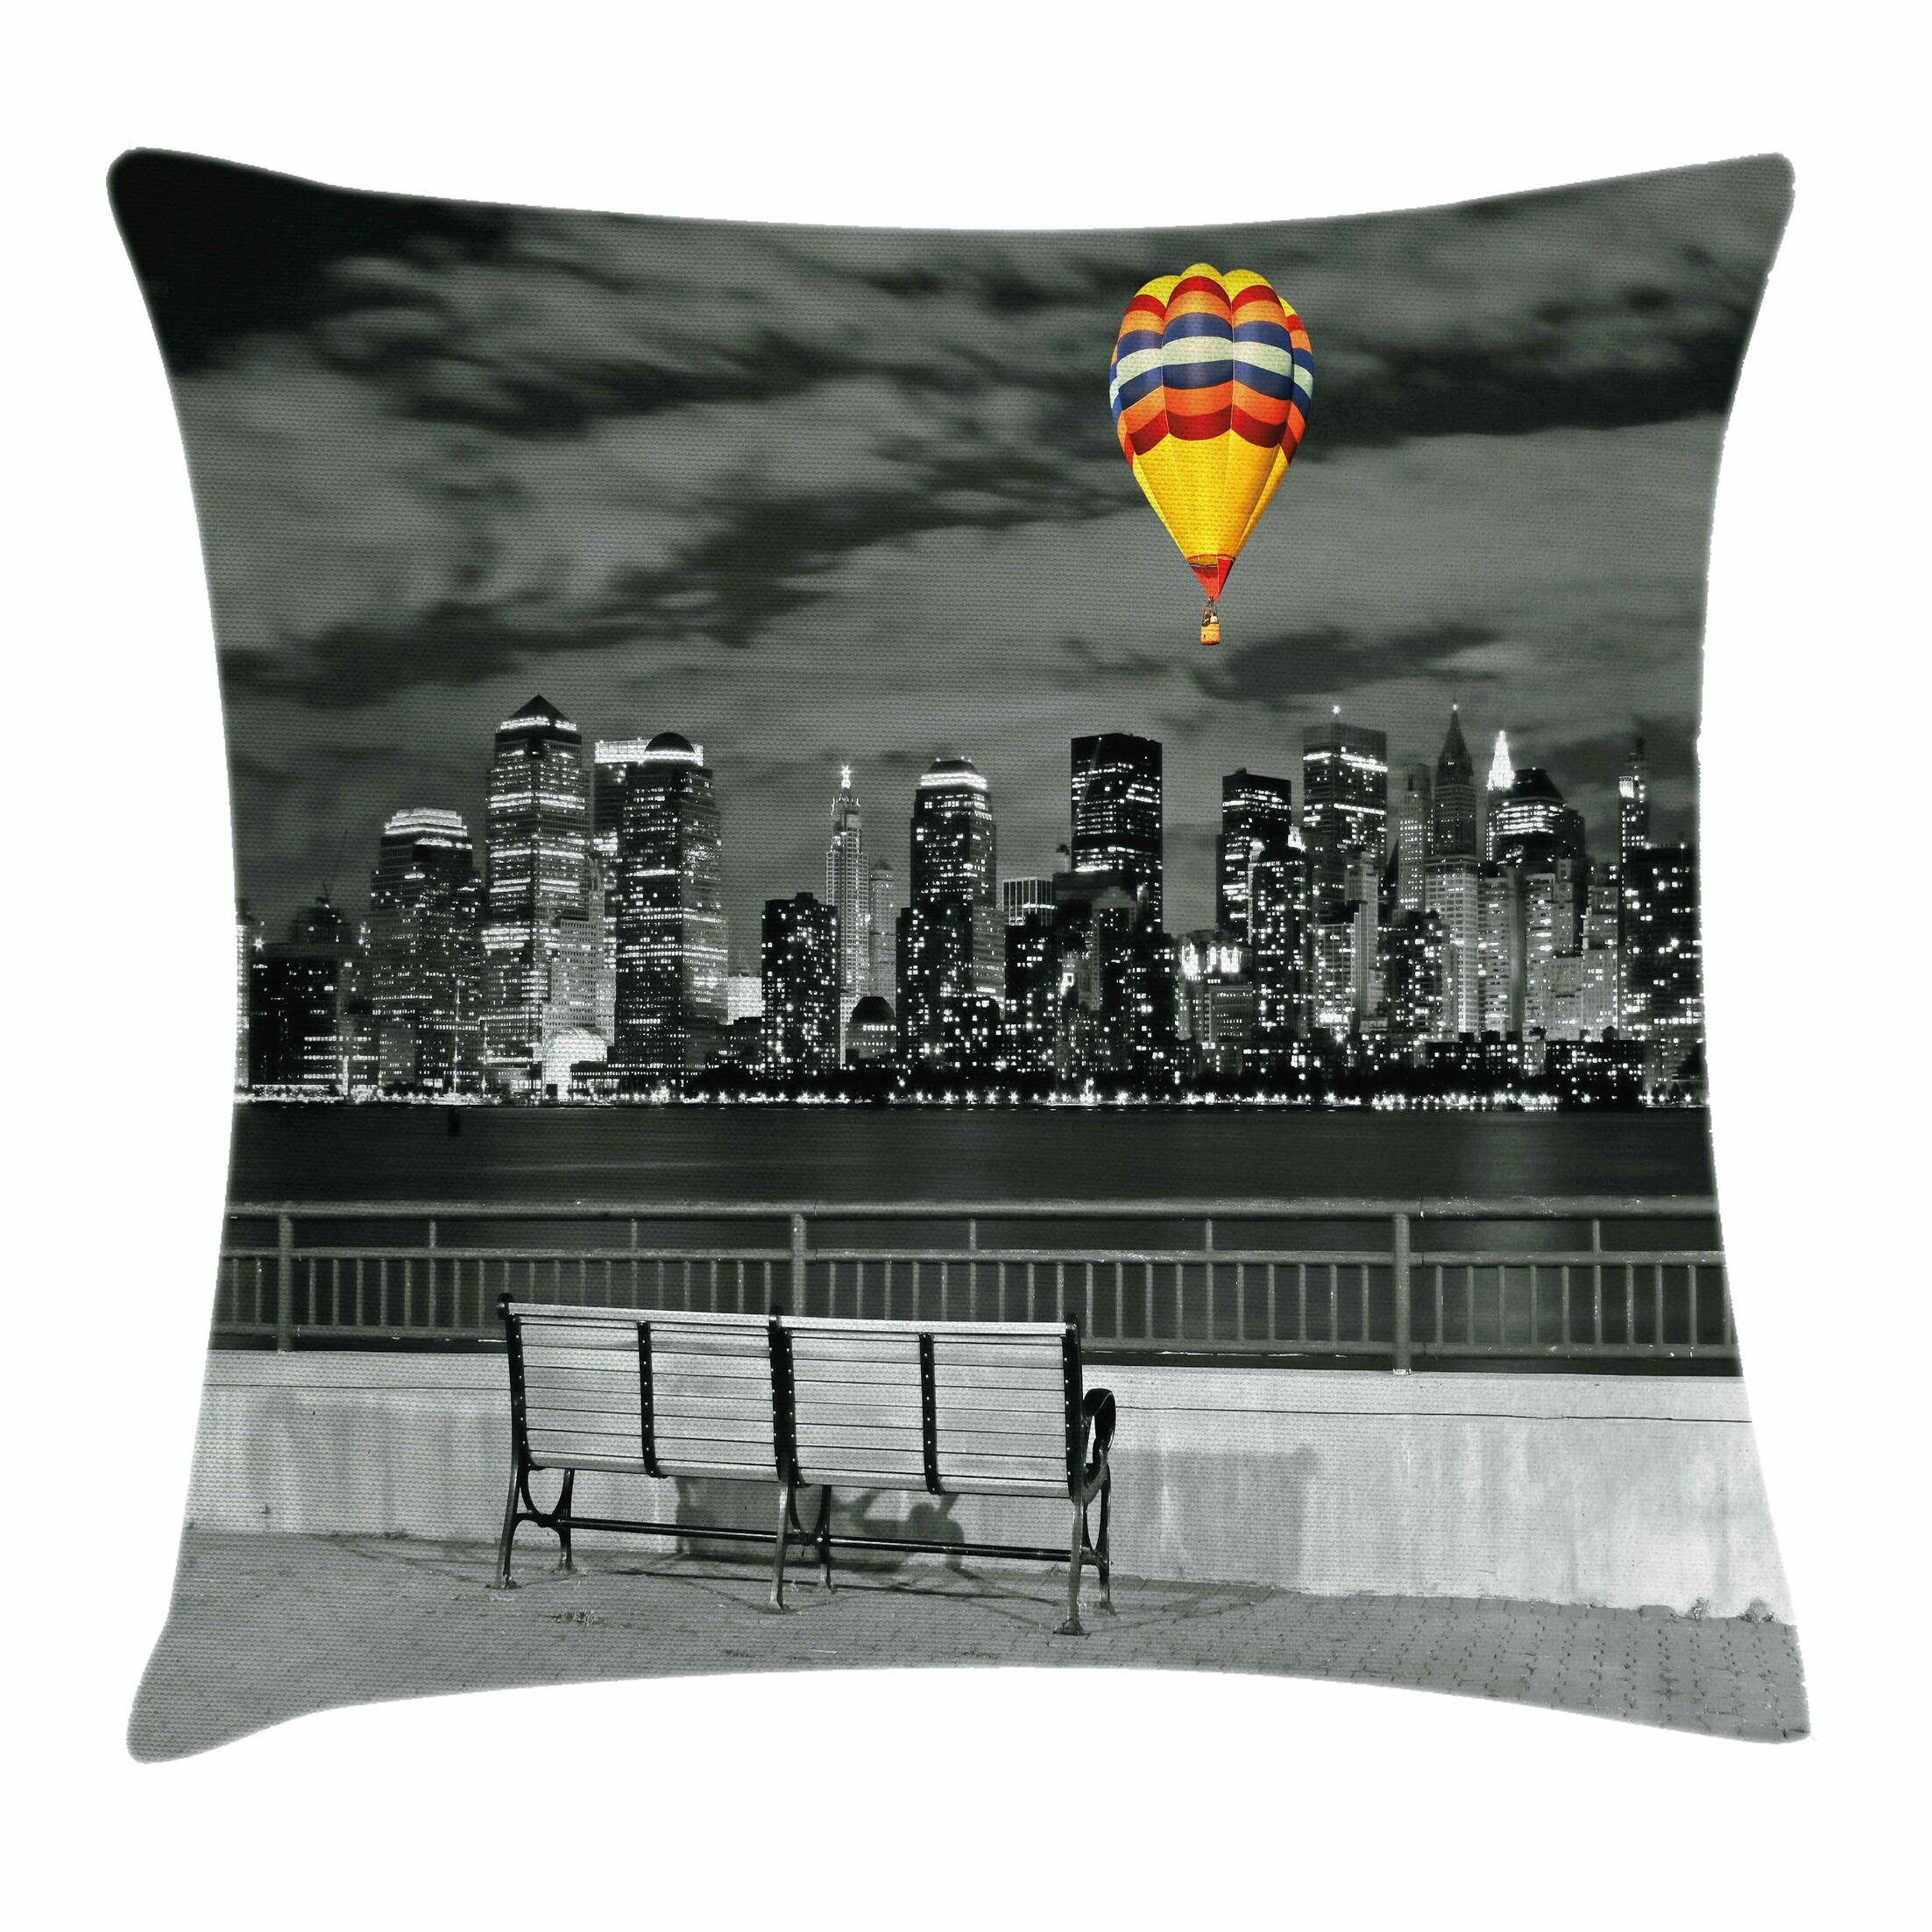 NYC Skyline Square Pillow Cover Size: 20